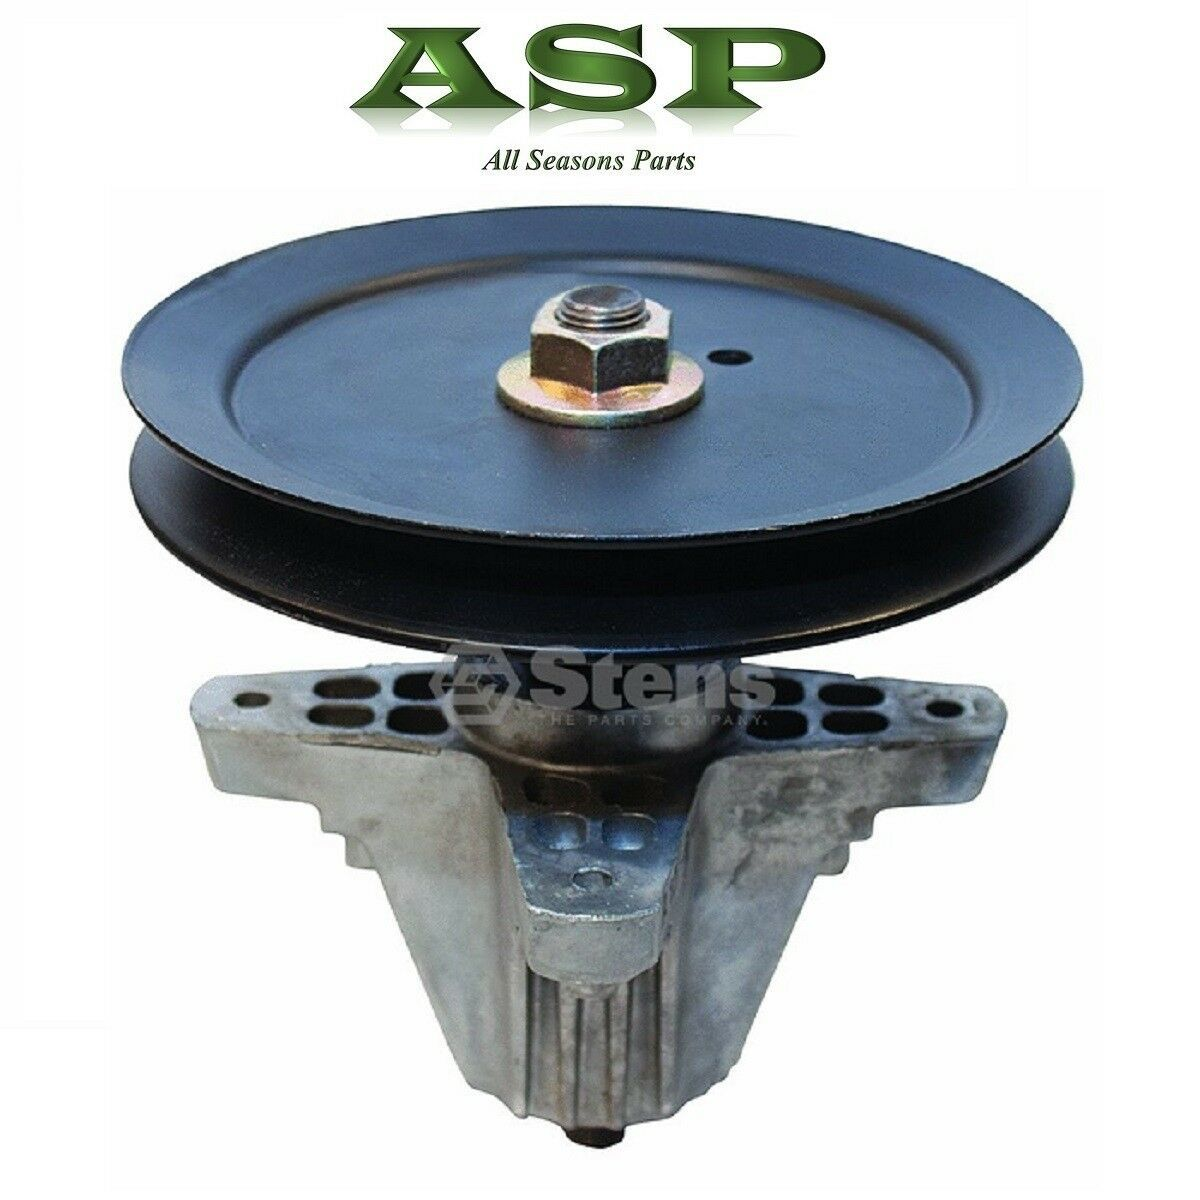 Spindle Assembly fits Cub Cadet MTD 618-04636 918-04636 618-04865 918-04865 - $61.48